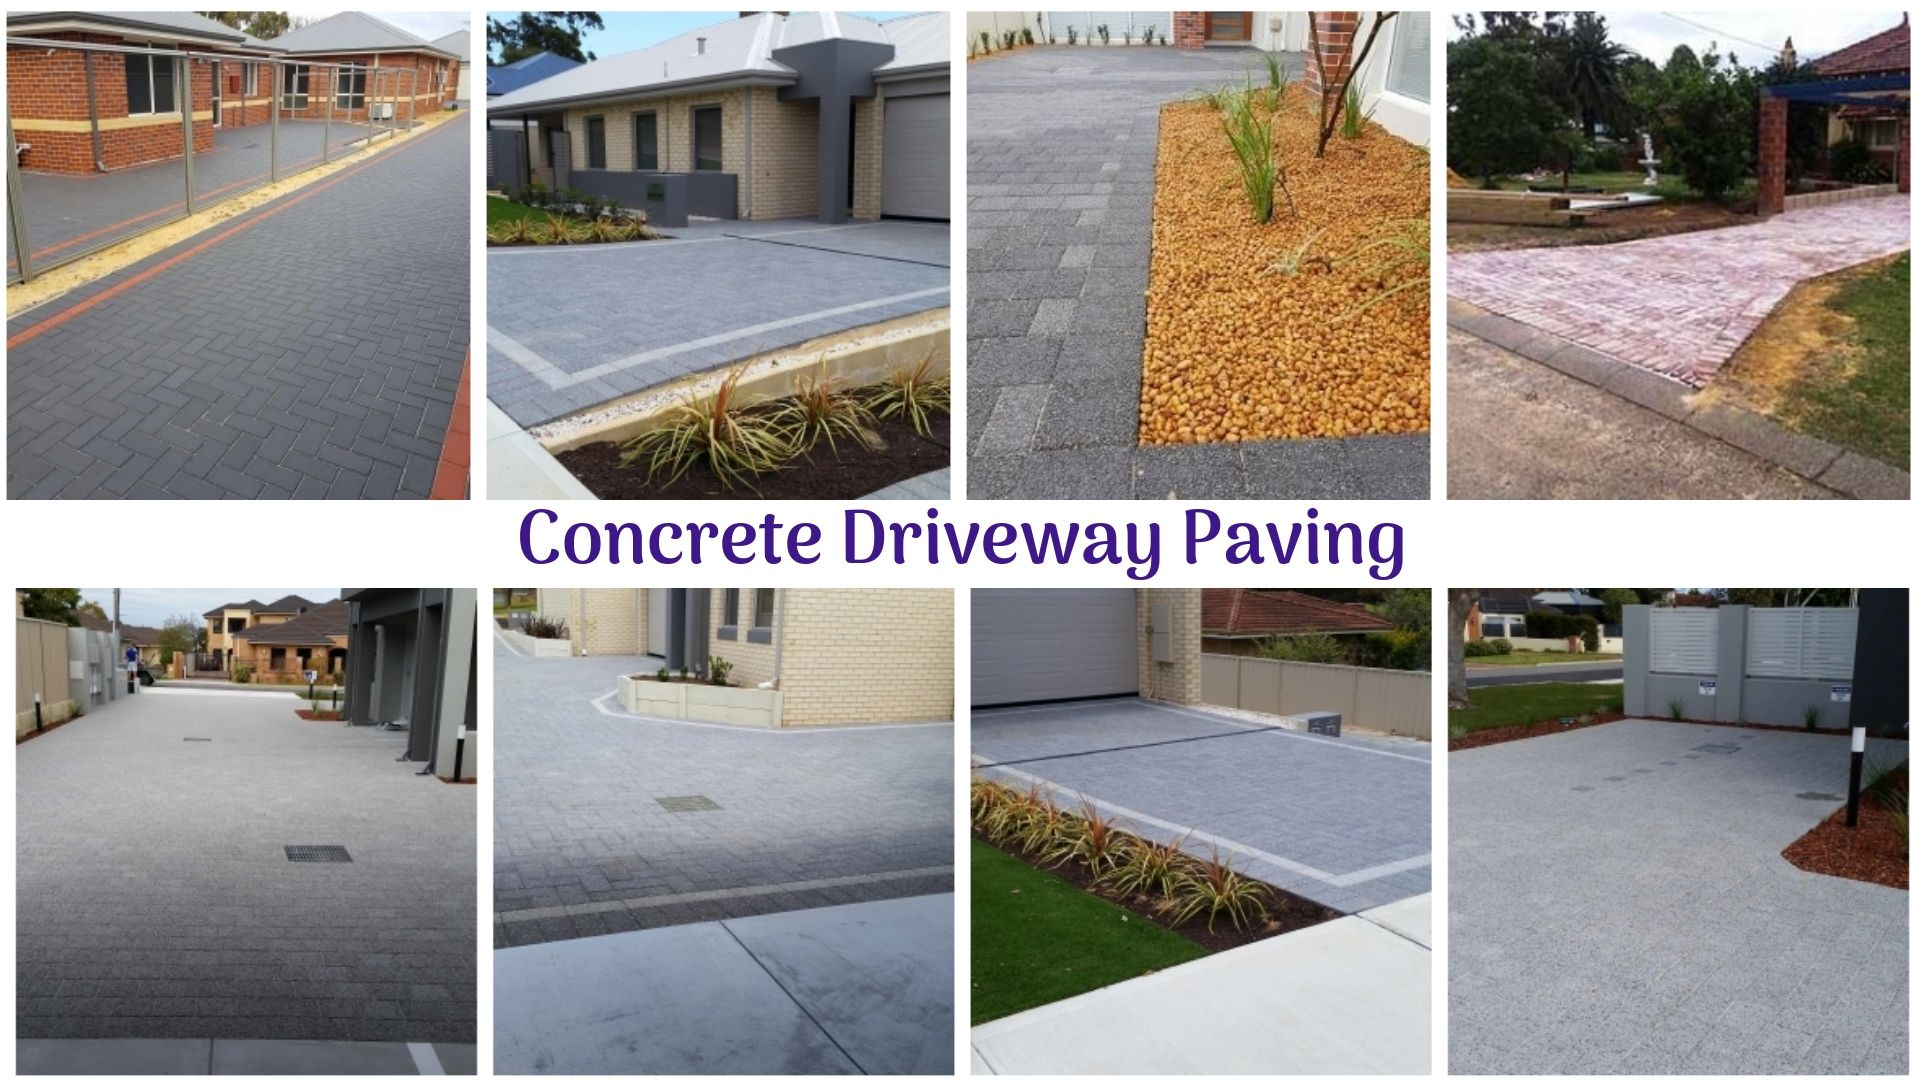 A concrete driveway can easily tolerate thousand pounds of